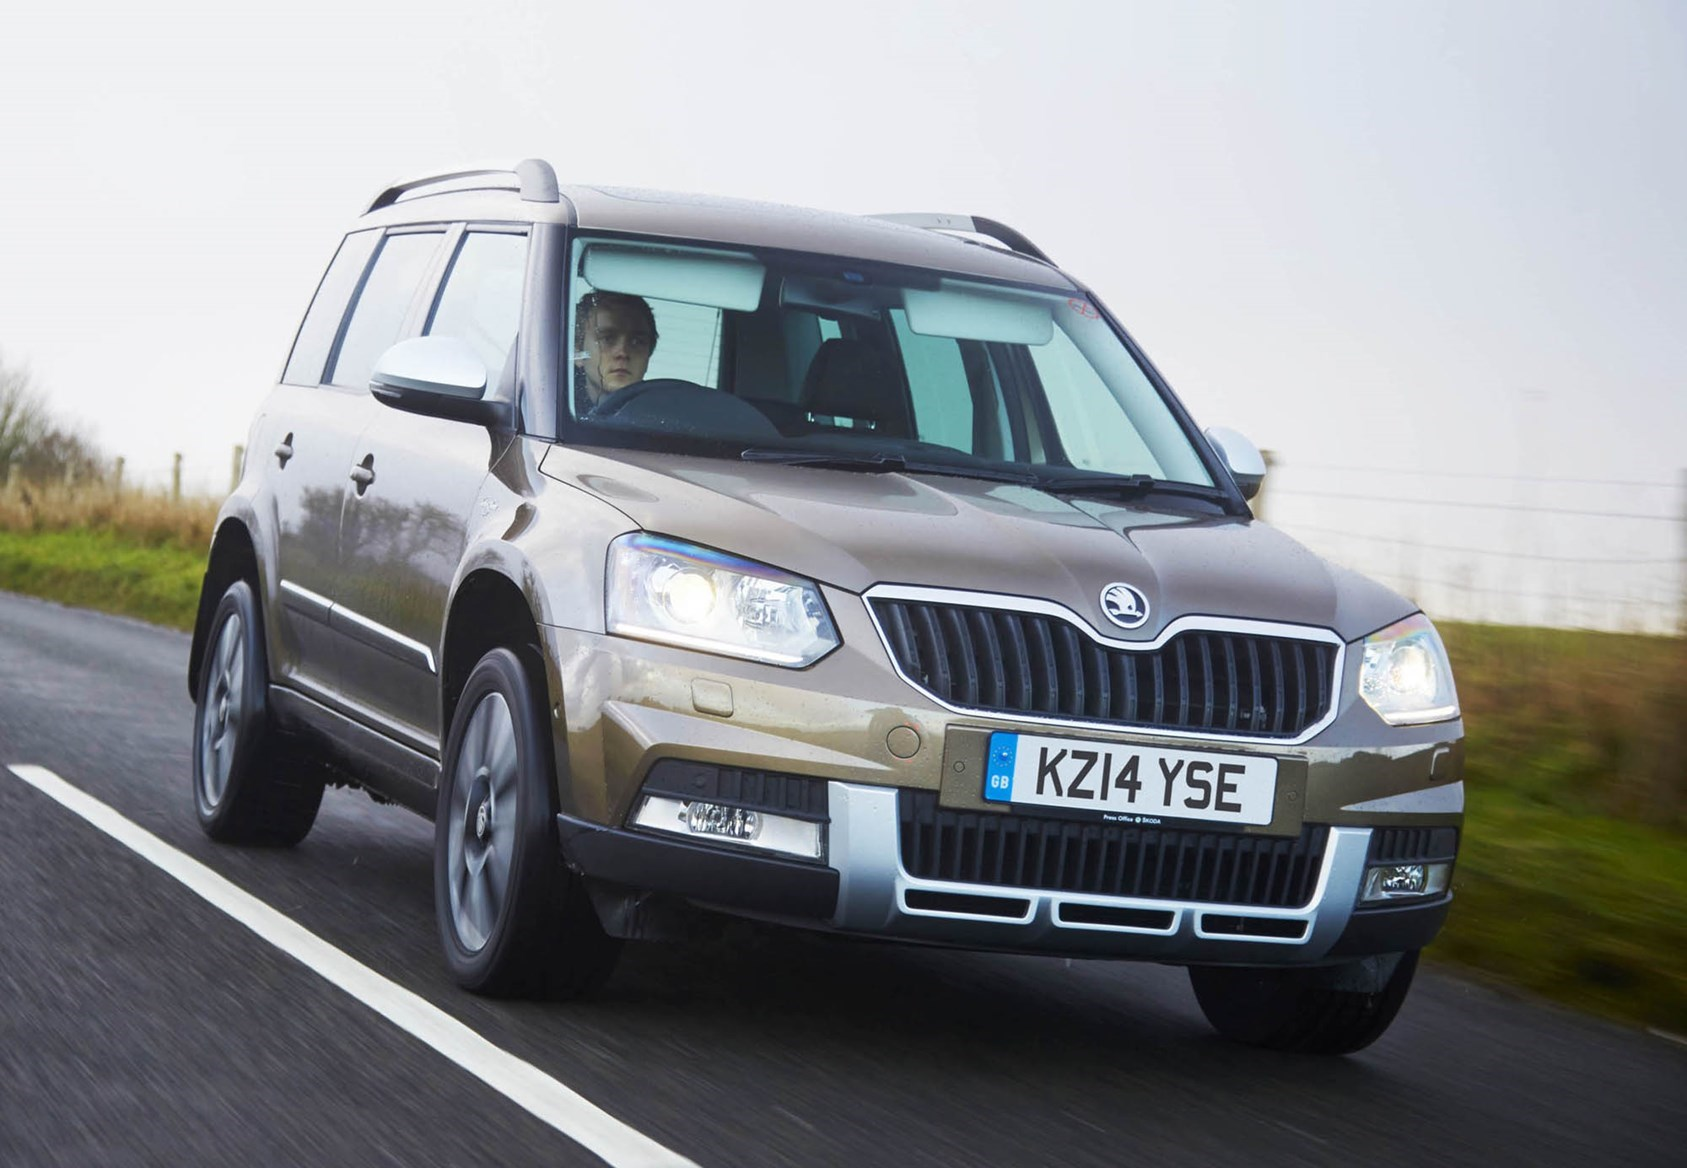 Skoda Yeti - Used car buying guide | Parkers